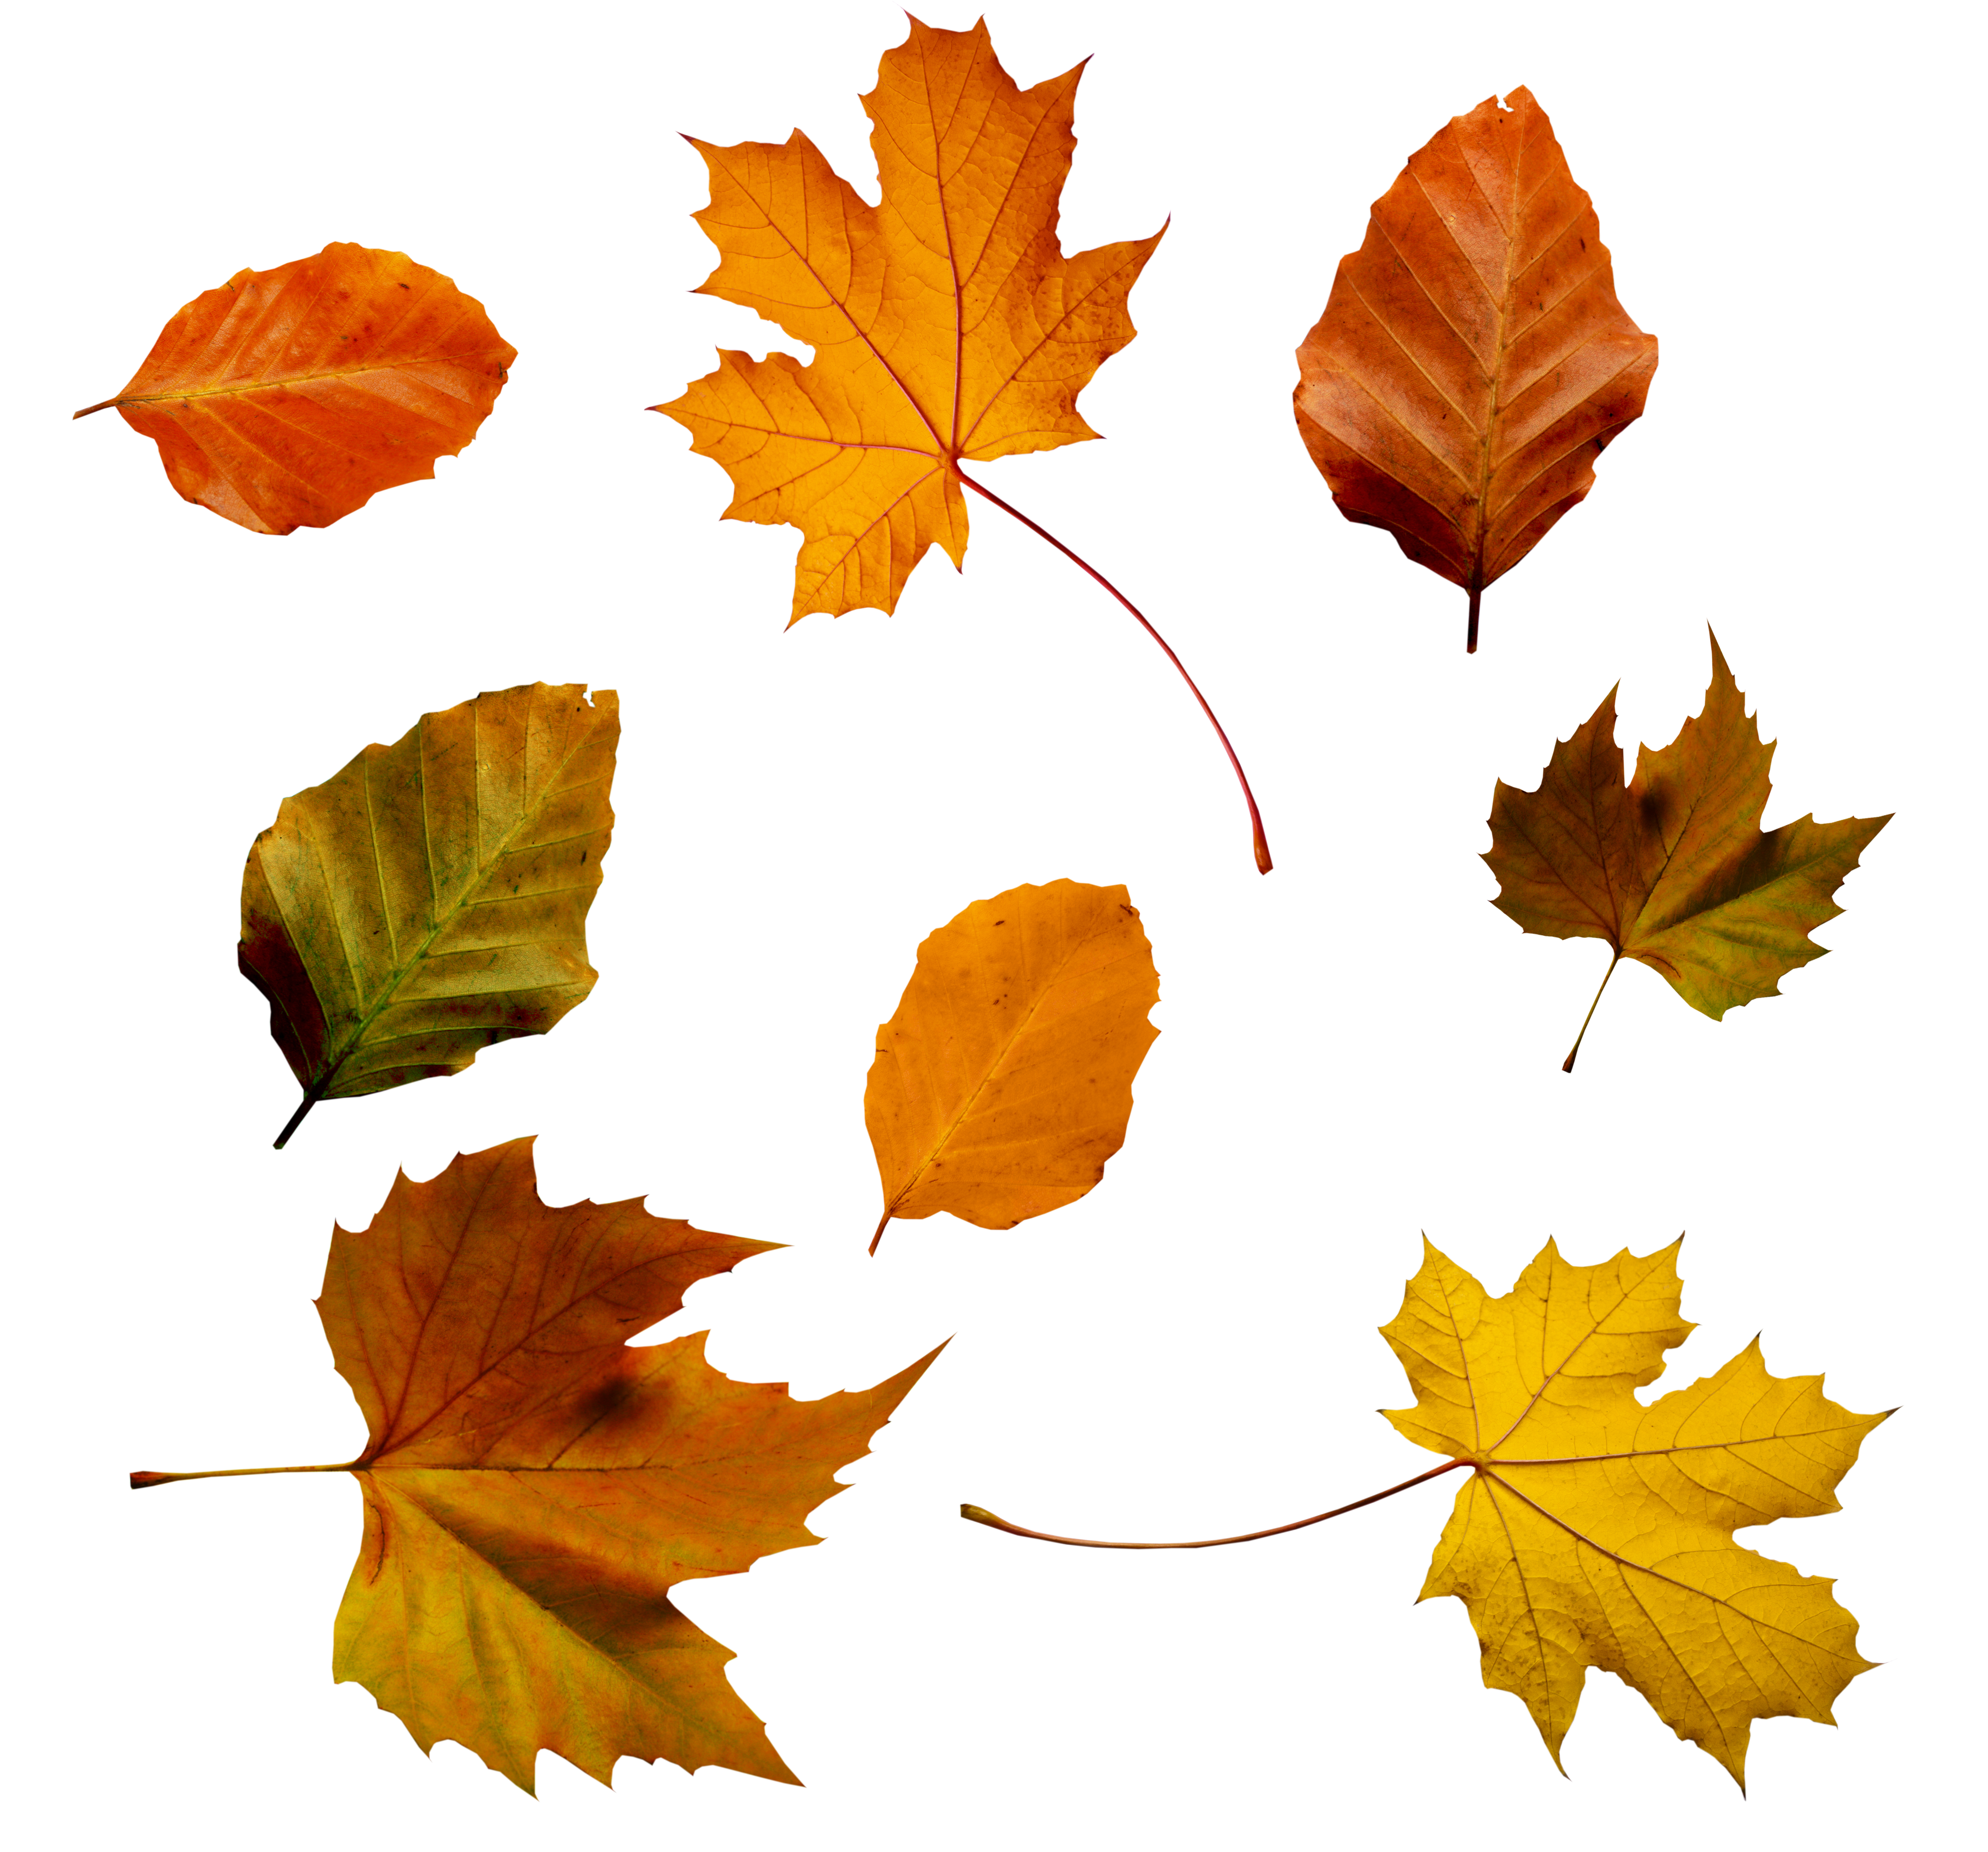 Photosynthesis - why do leaves change colors in the fall?